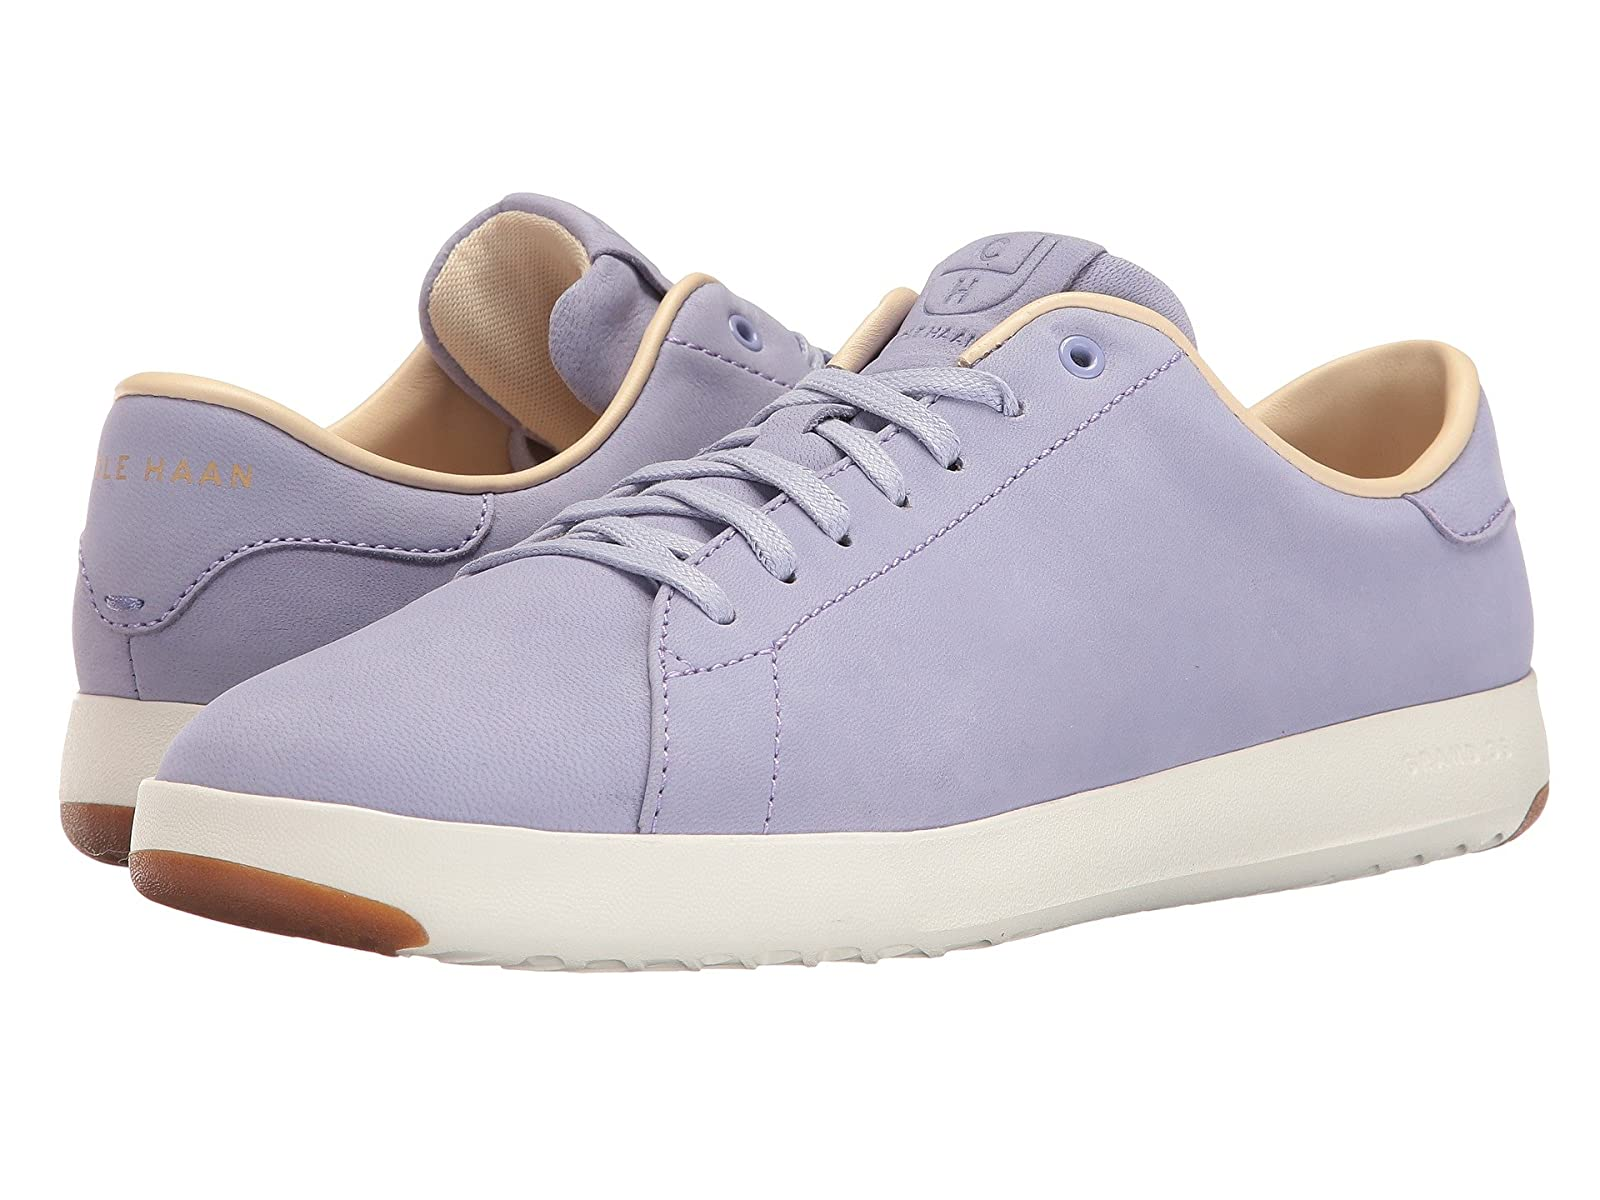 Cole Haan Grandpro TennisCheap and distinctive eye-catching shoes